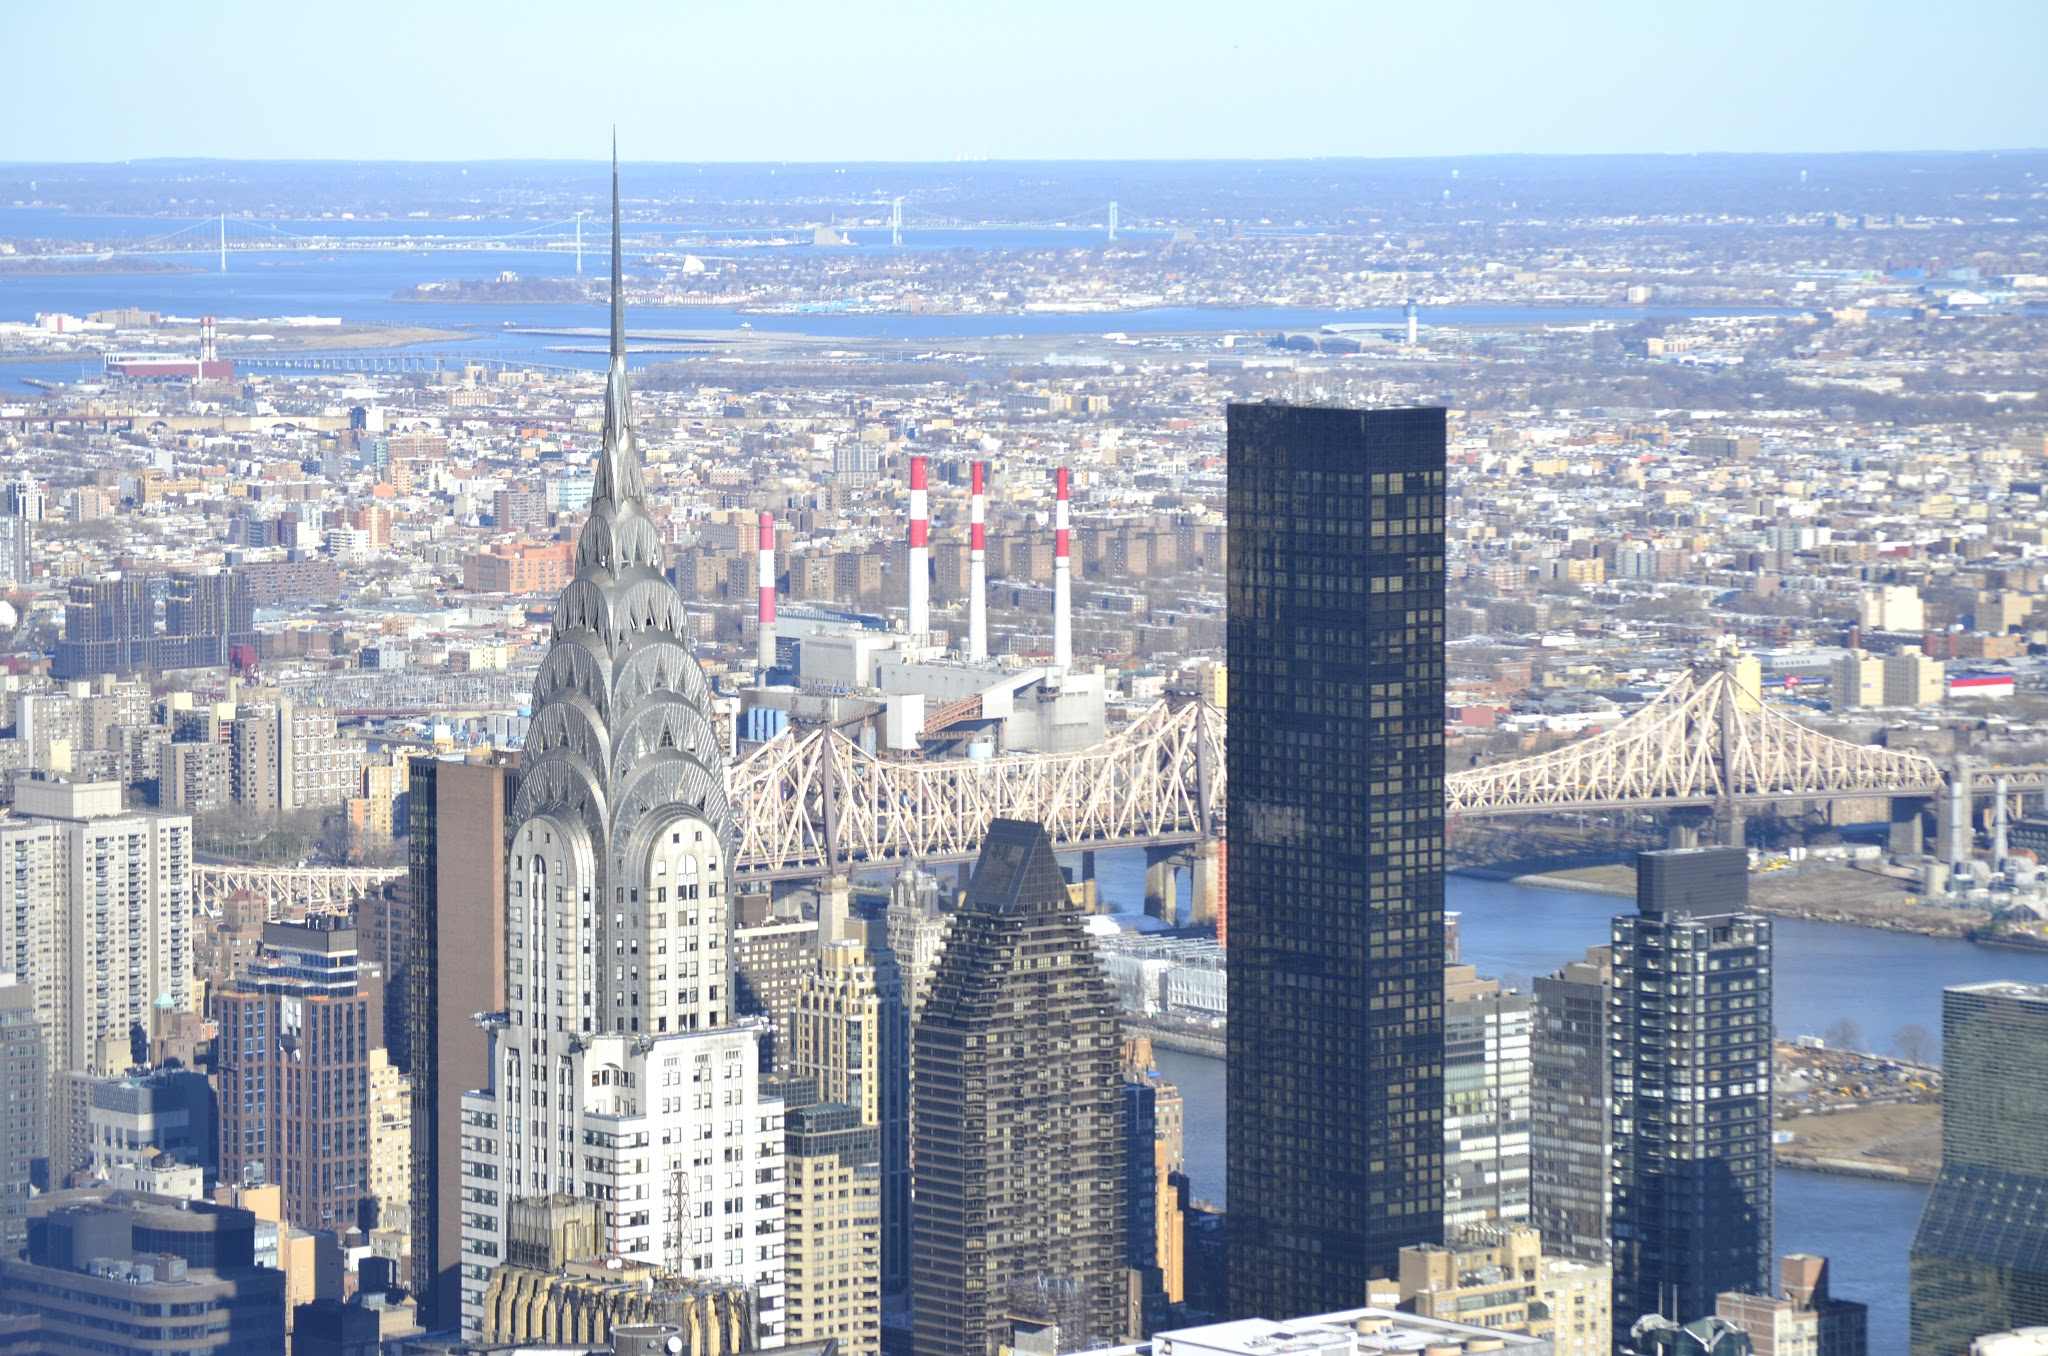 views_from_empire_state_building_new_york_city